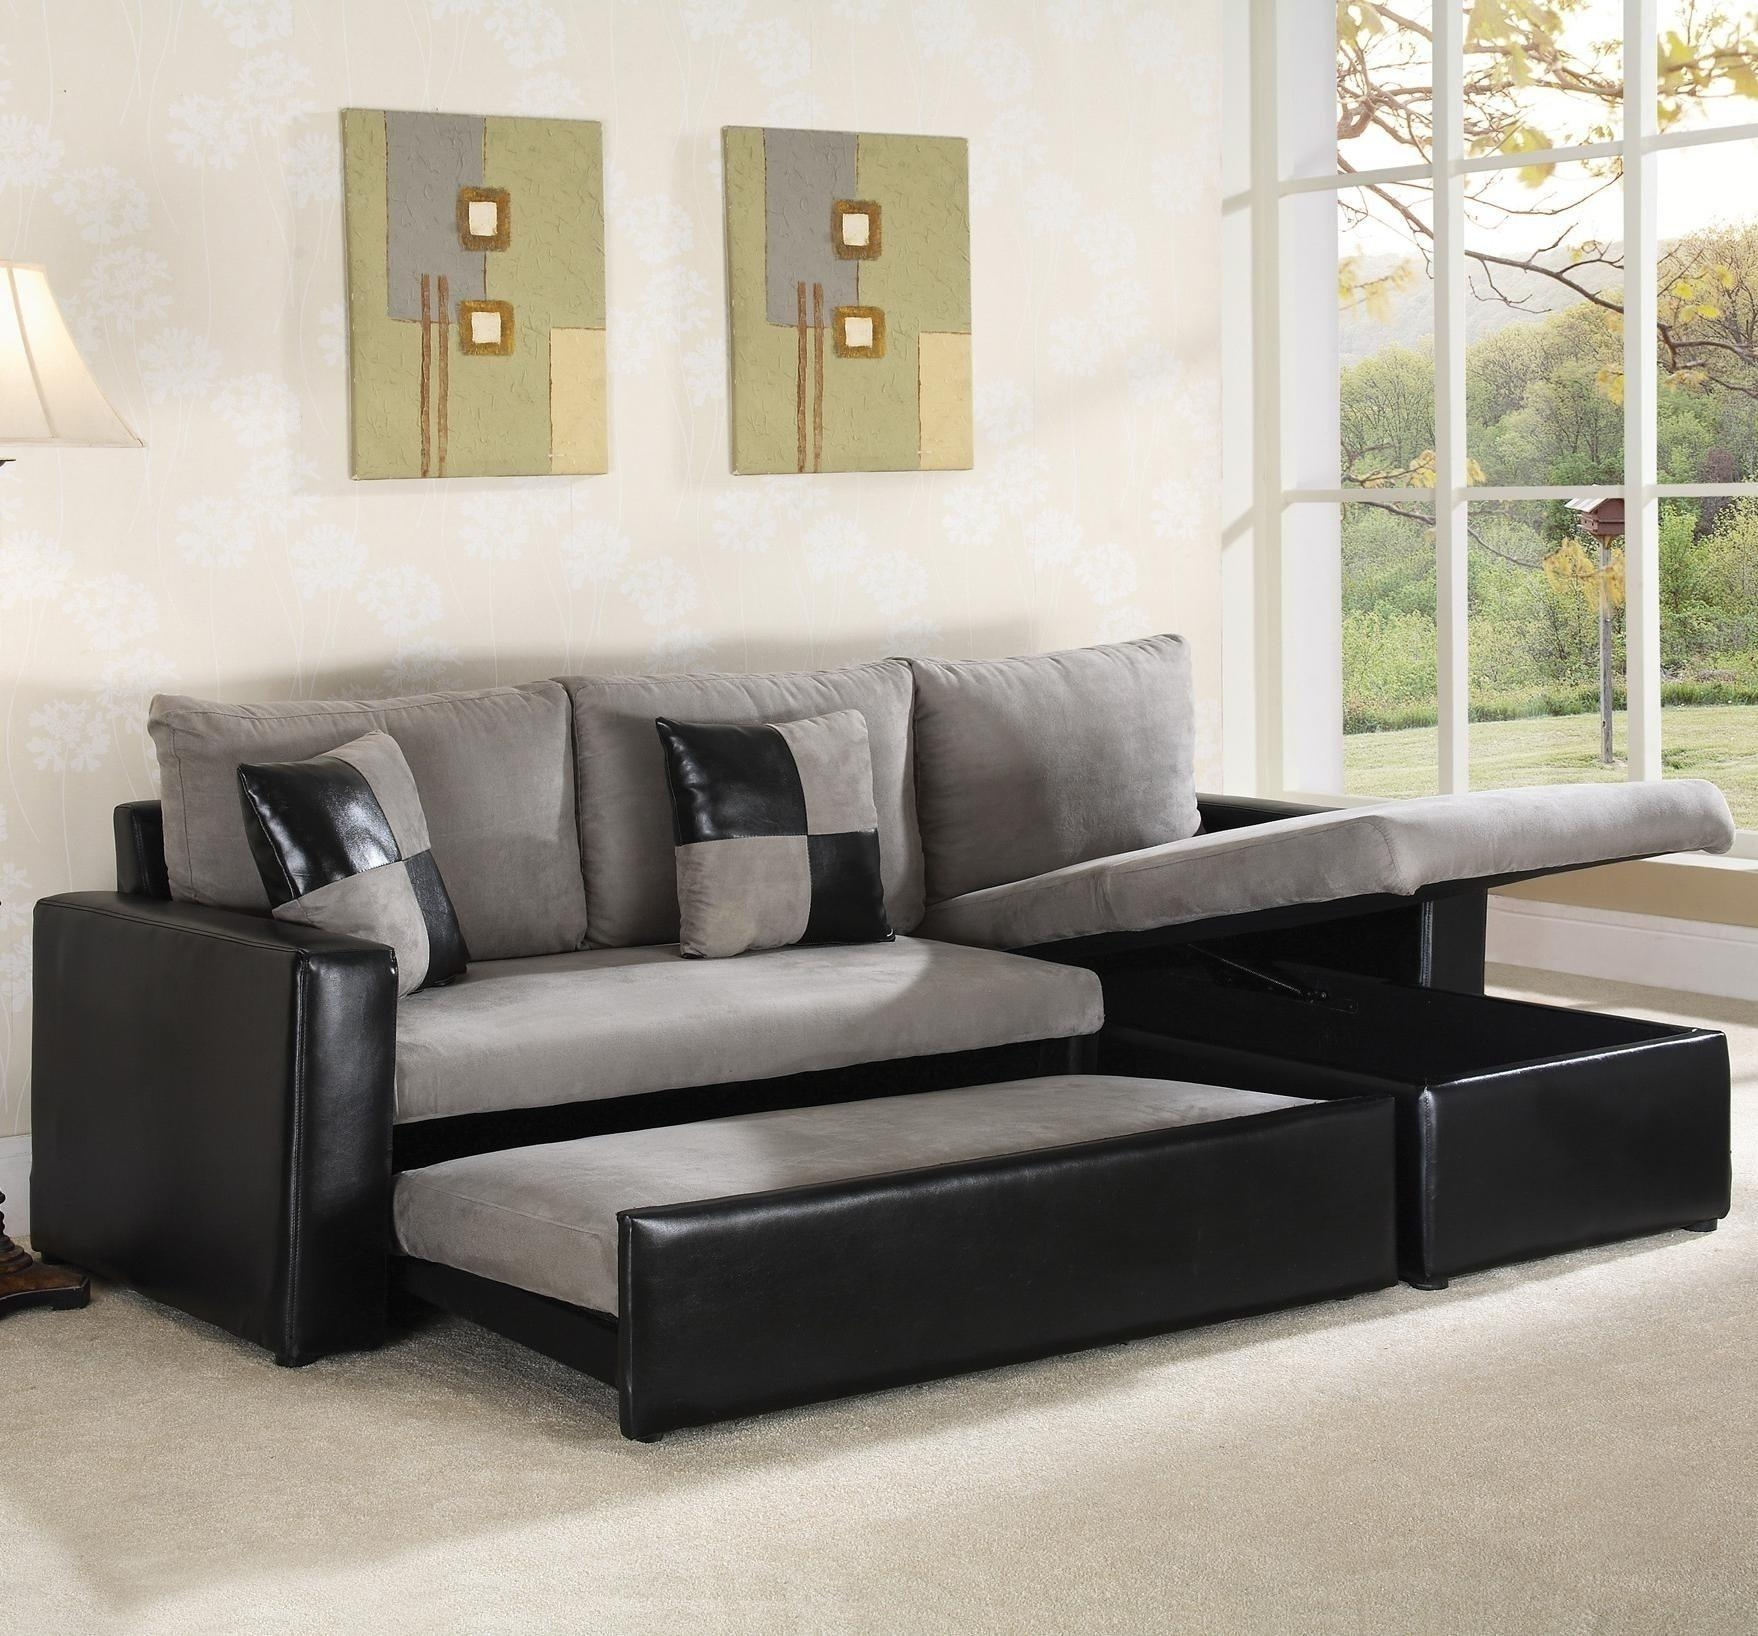 Sofas Center : Smartness Ideas Best Leather Sleeper Sofa Natuzzi Throughout Sears Sleeper Sofas (View 17 of 20)